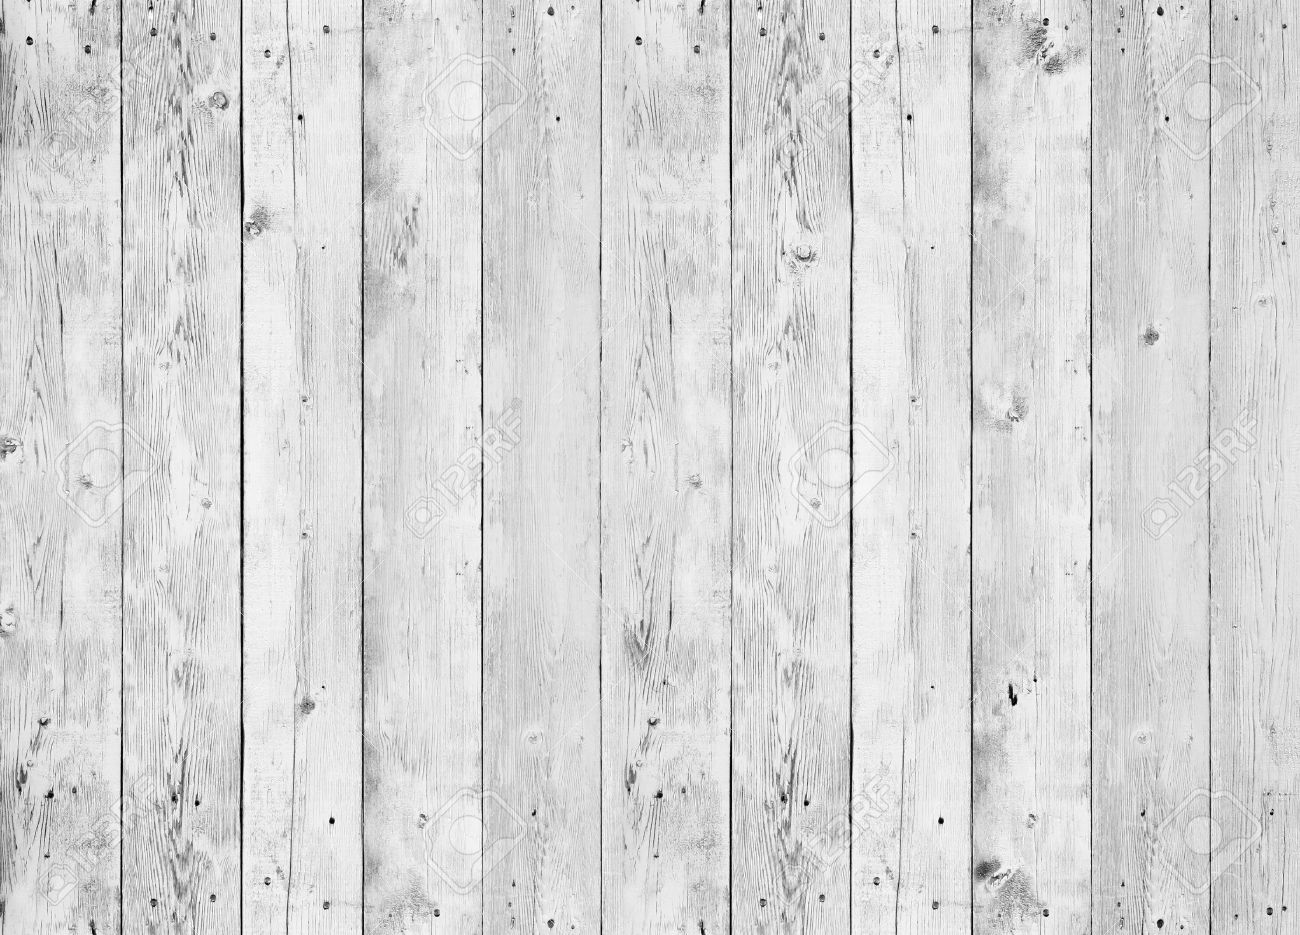 The White Wood Texture With Natural Patterns Background Stock 1300x935